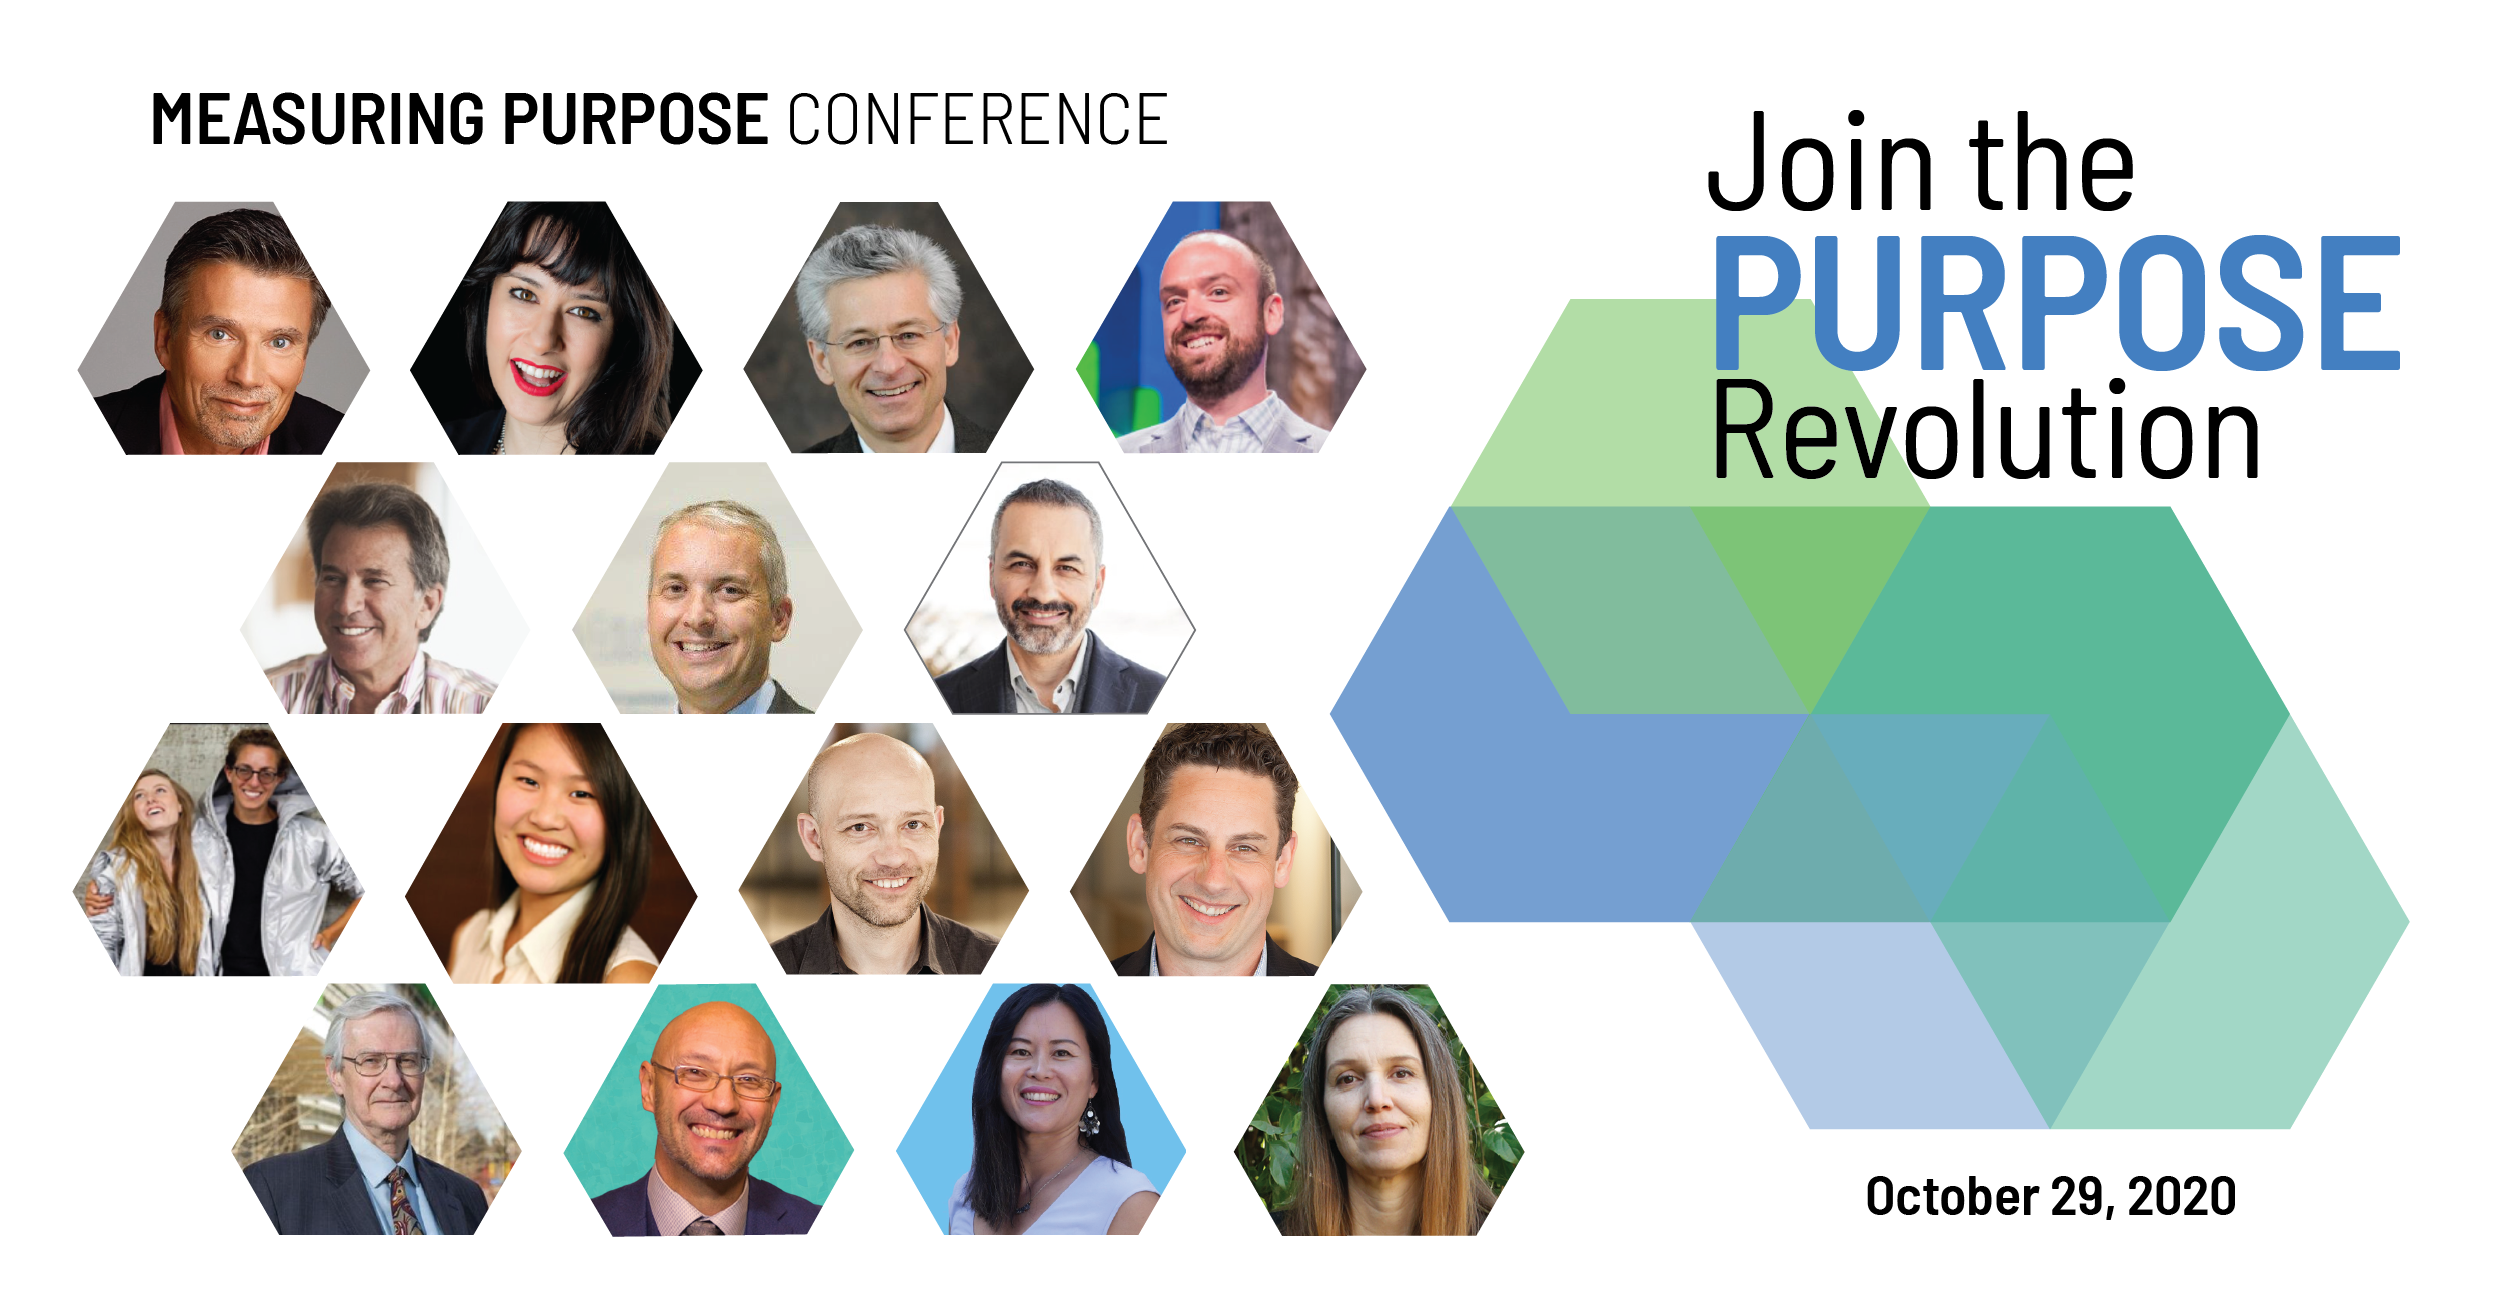 measuring purpose conference sustainable impact make change